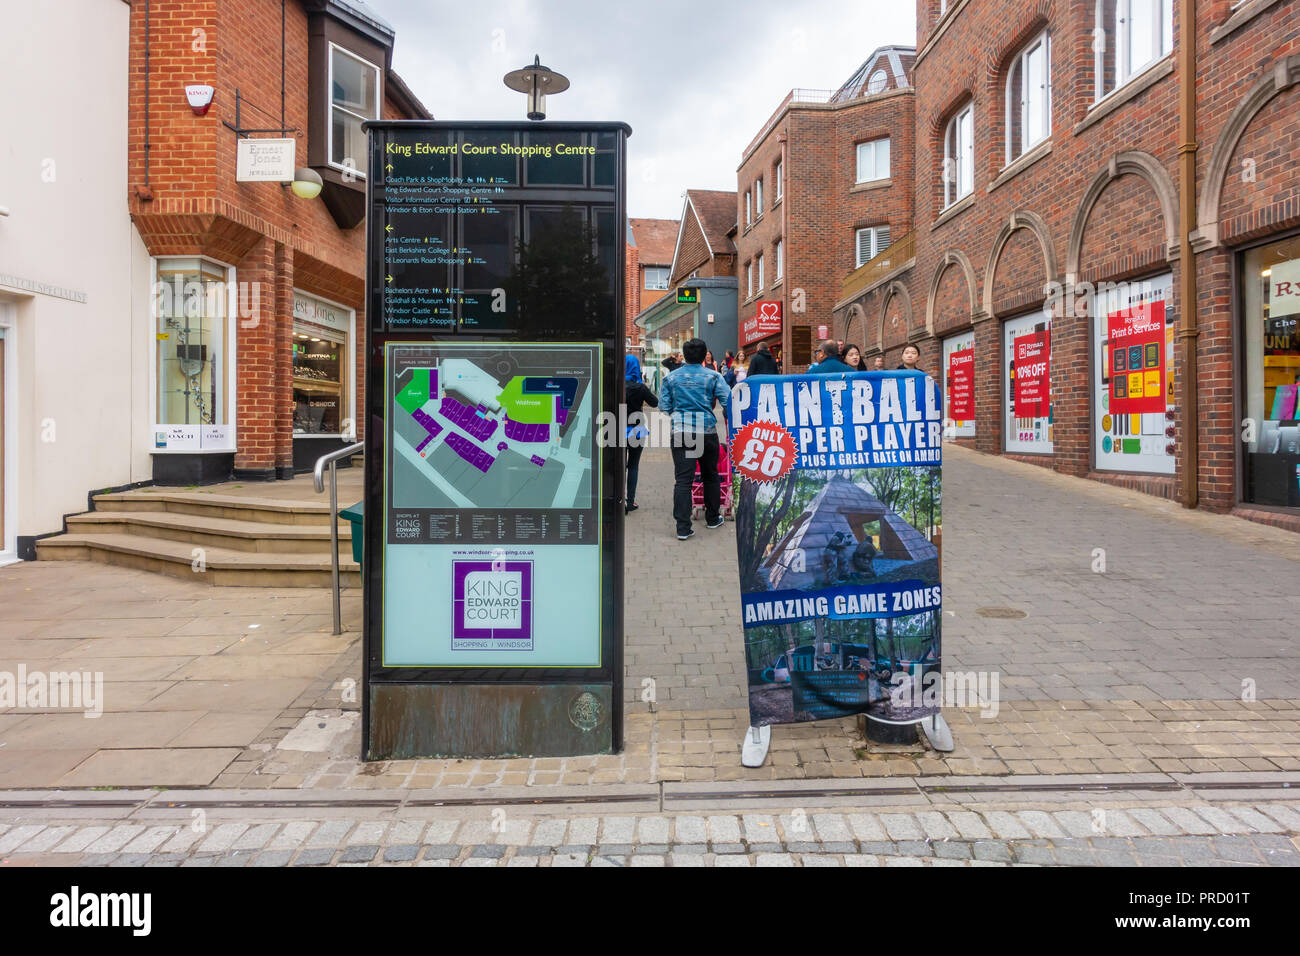 An information sigh for King Edward Court Shopping Centre on Peascod Street in Windsor, UK next to a sign advertising paint balling. - Stock Image